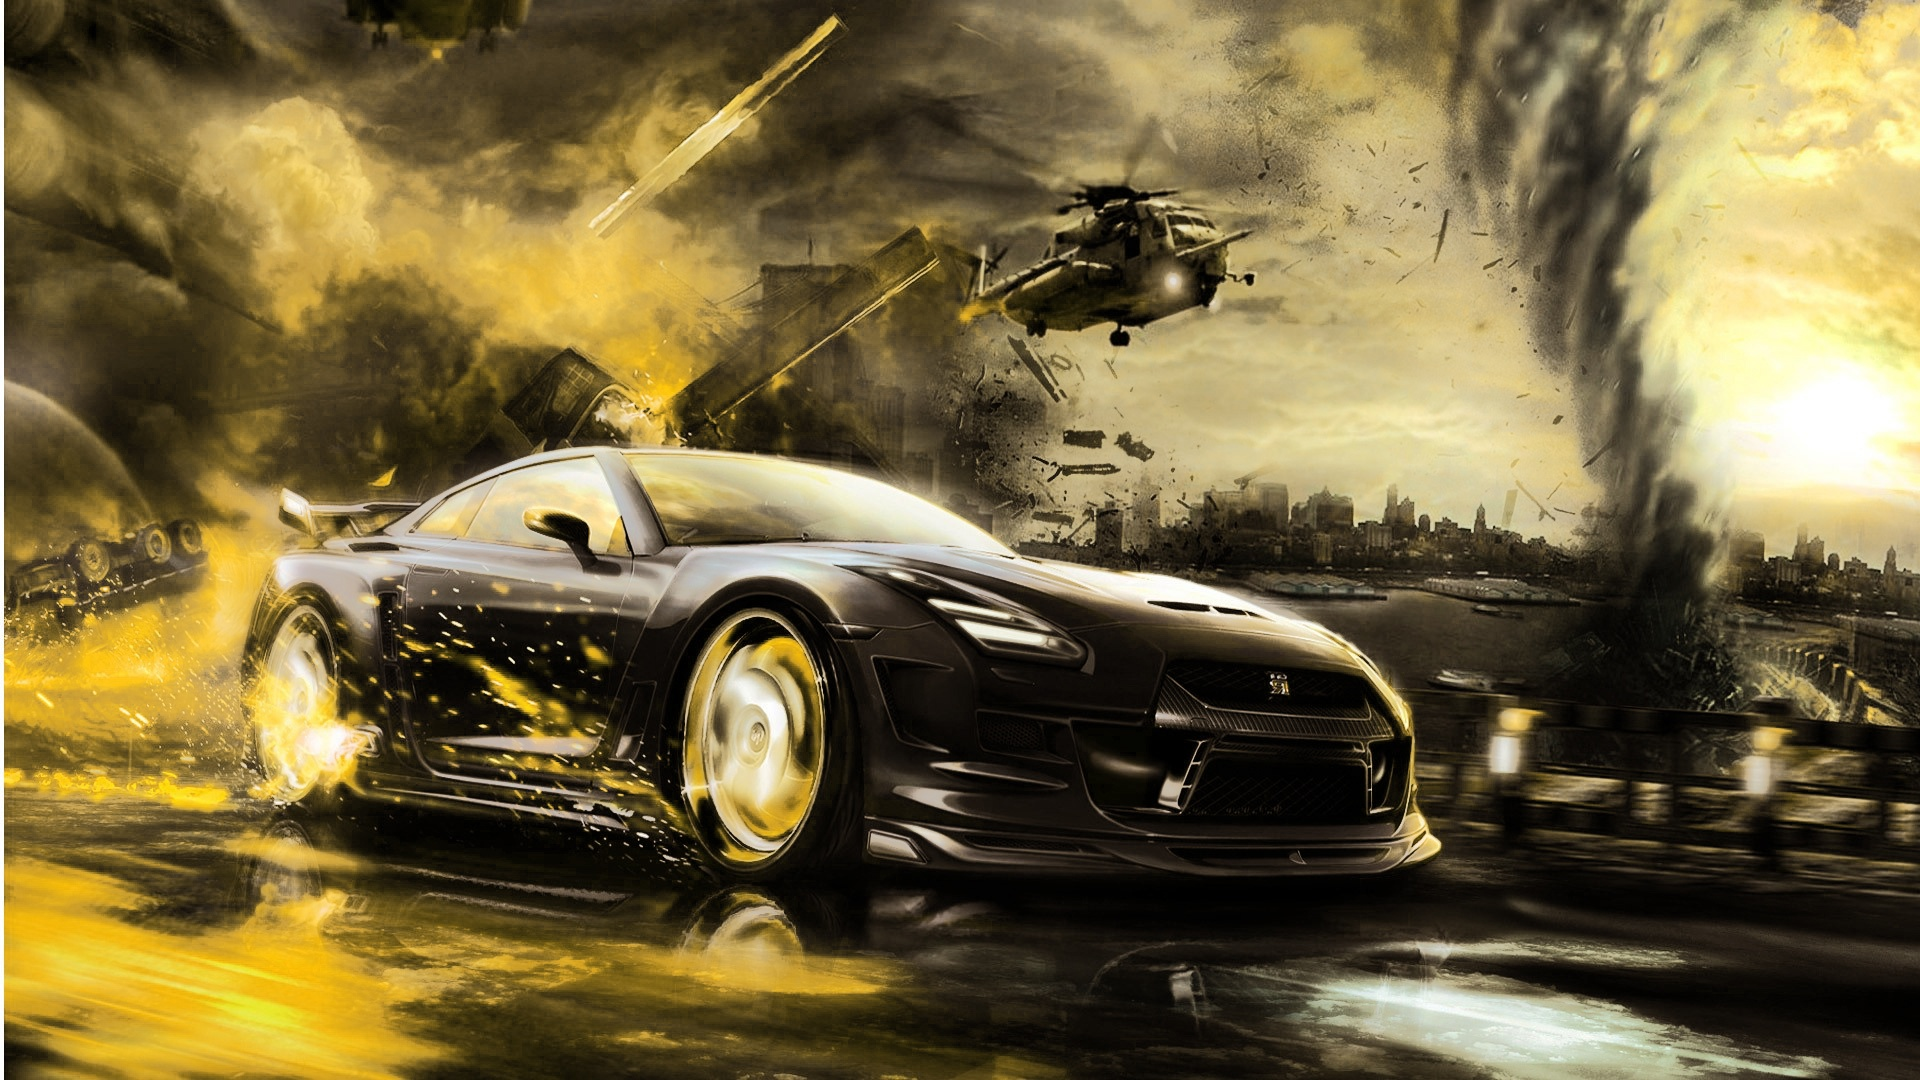 Awesome Car Backgrounds - WallpaperSafari